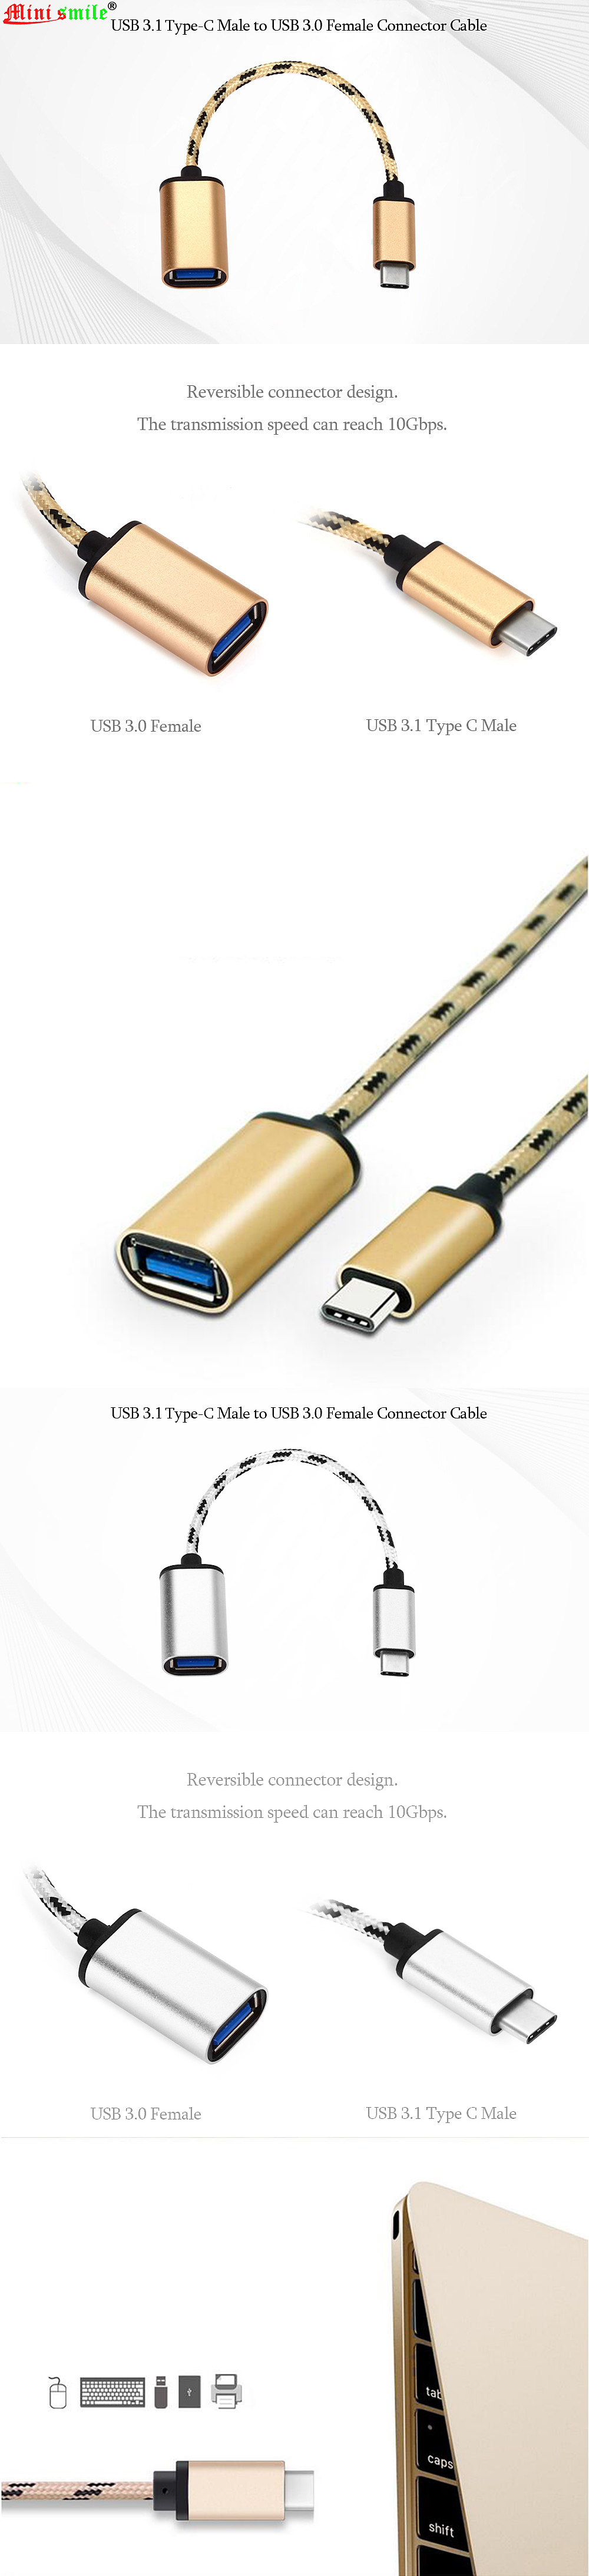 Minismile USB 3.1 Type-C Male to USB 3.0 Female OTG Adapter Cable for MacBook - Gold